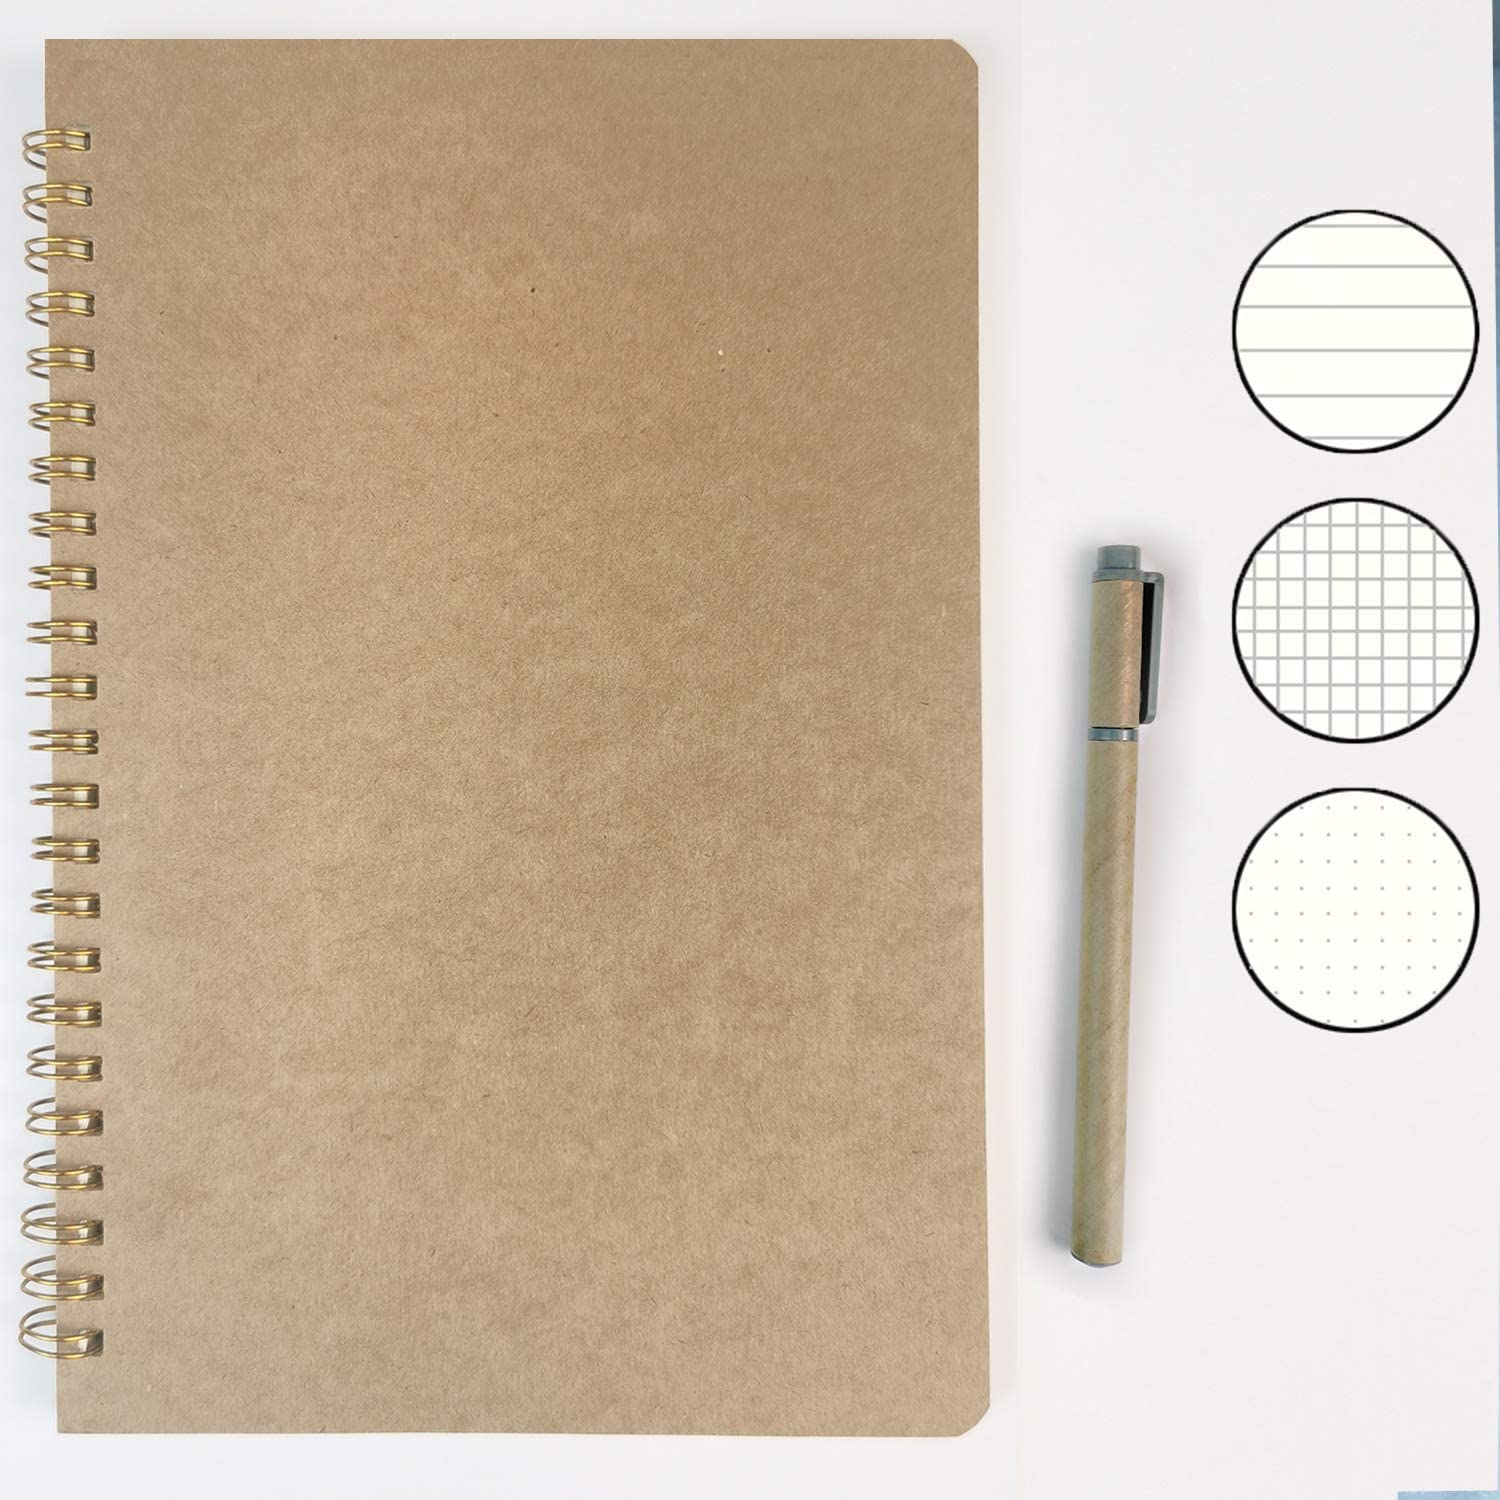 notebook soft cover note book spiral notebooks lined college ruled B5 Hard kraft cover writing wirebound journal diary note books gel pen sprial bound office subjects memo book notepads travel diary